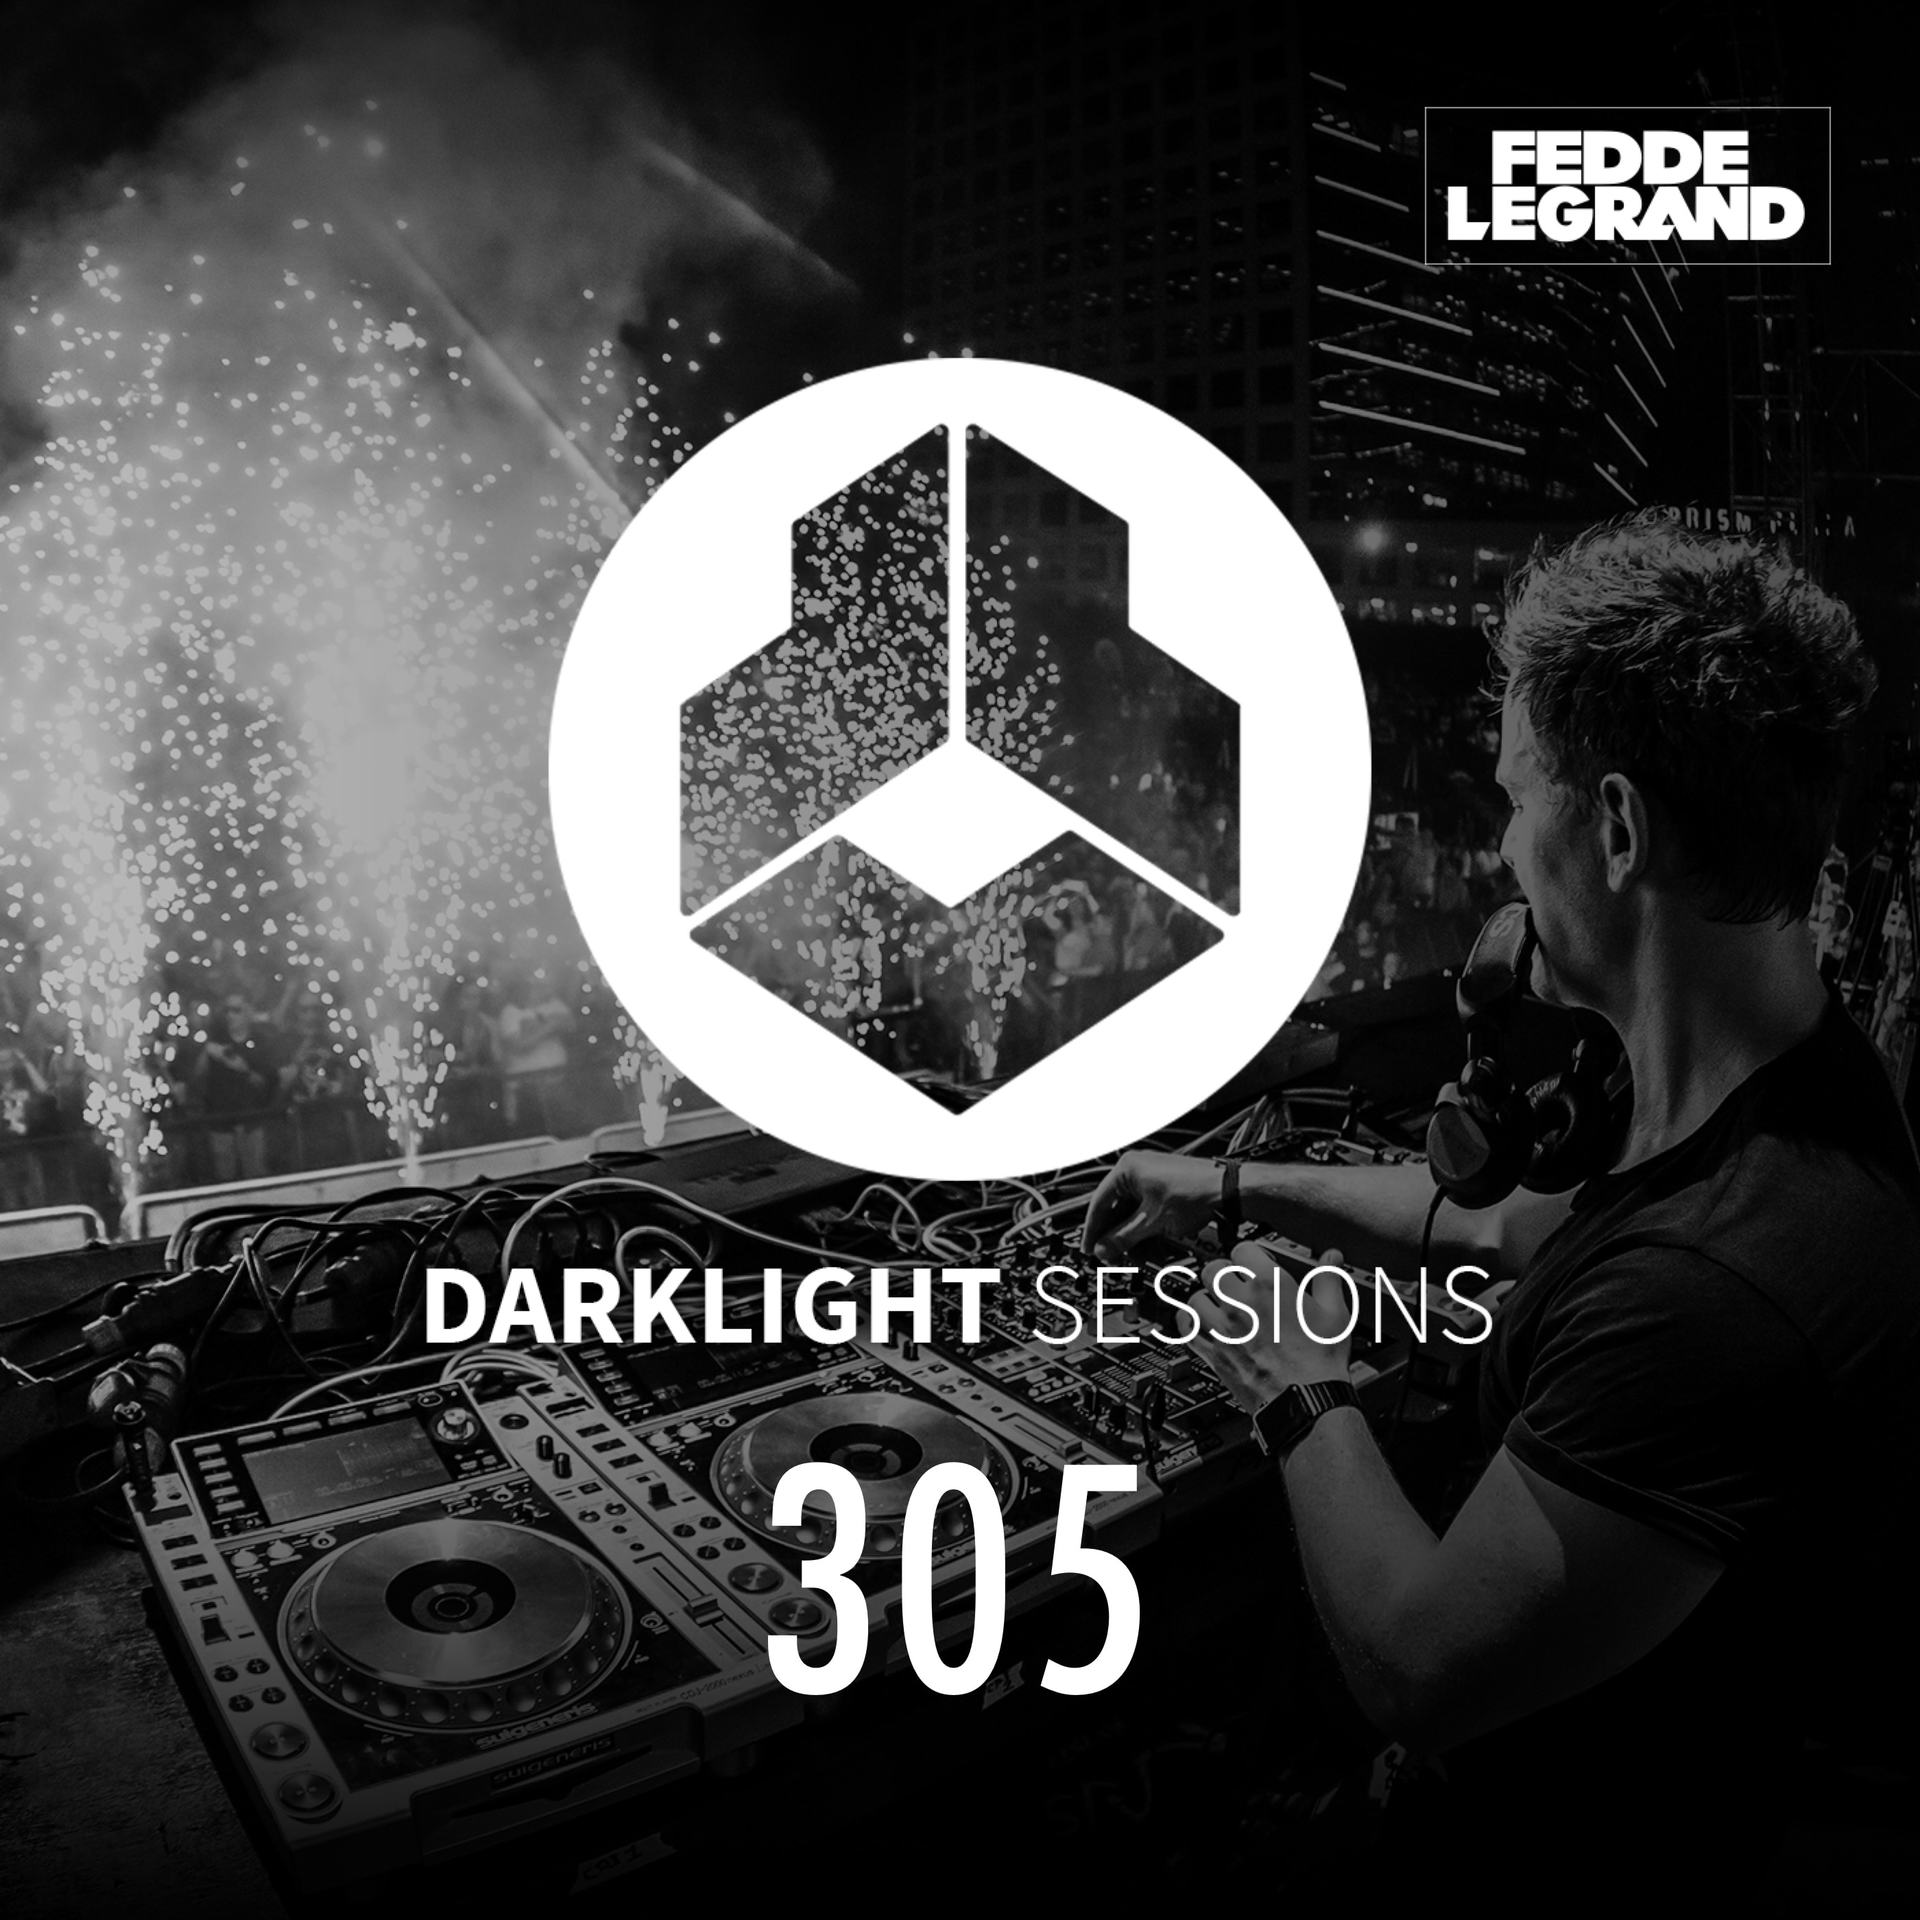 Darklight Sessions 305